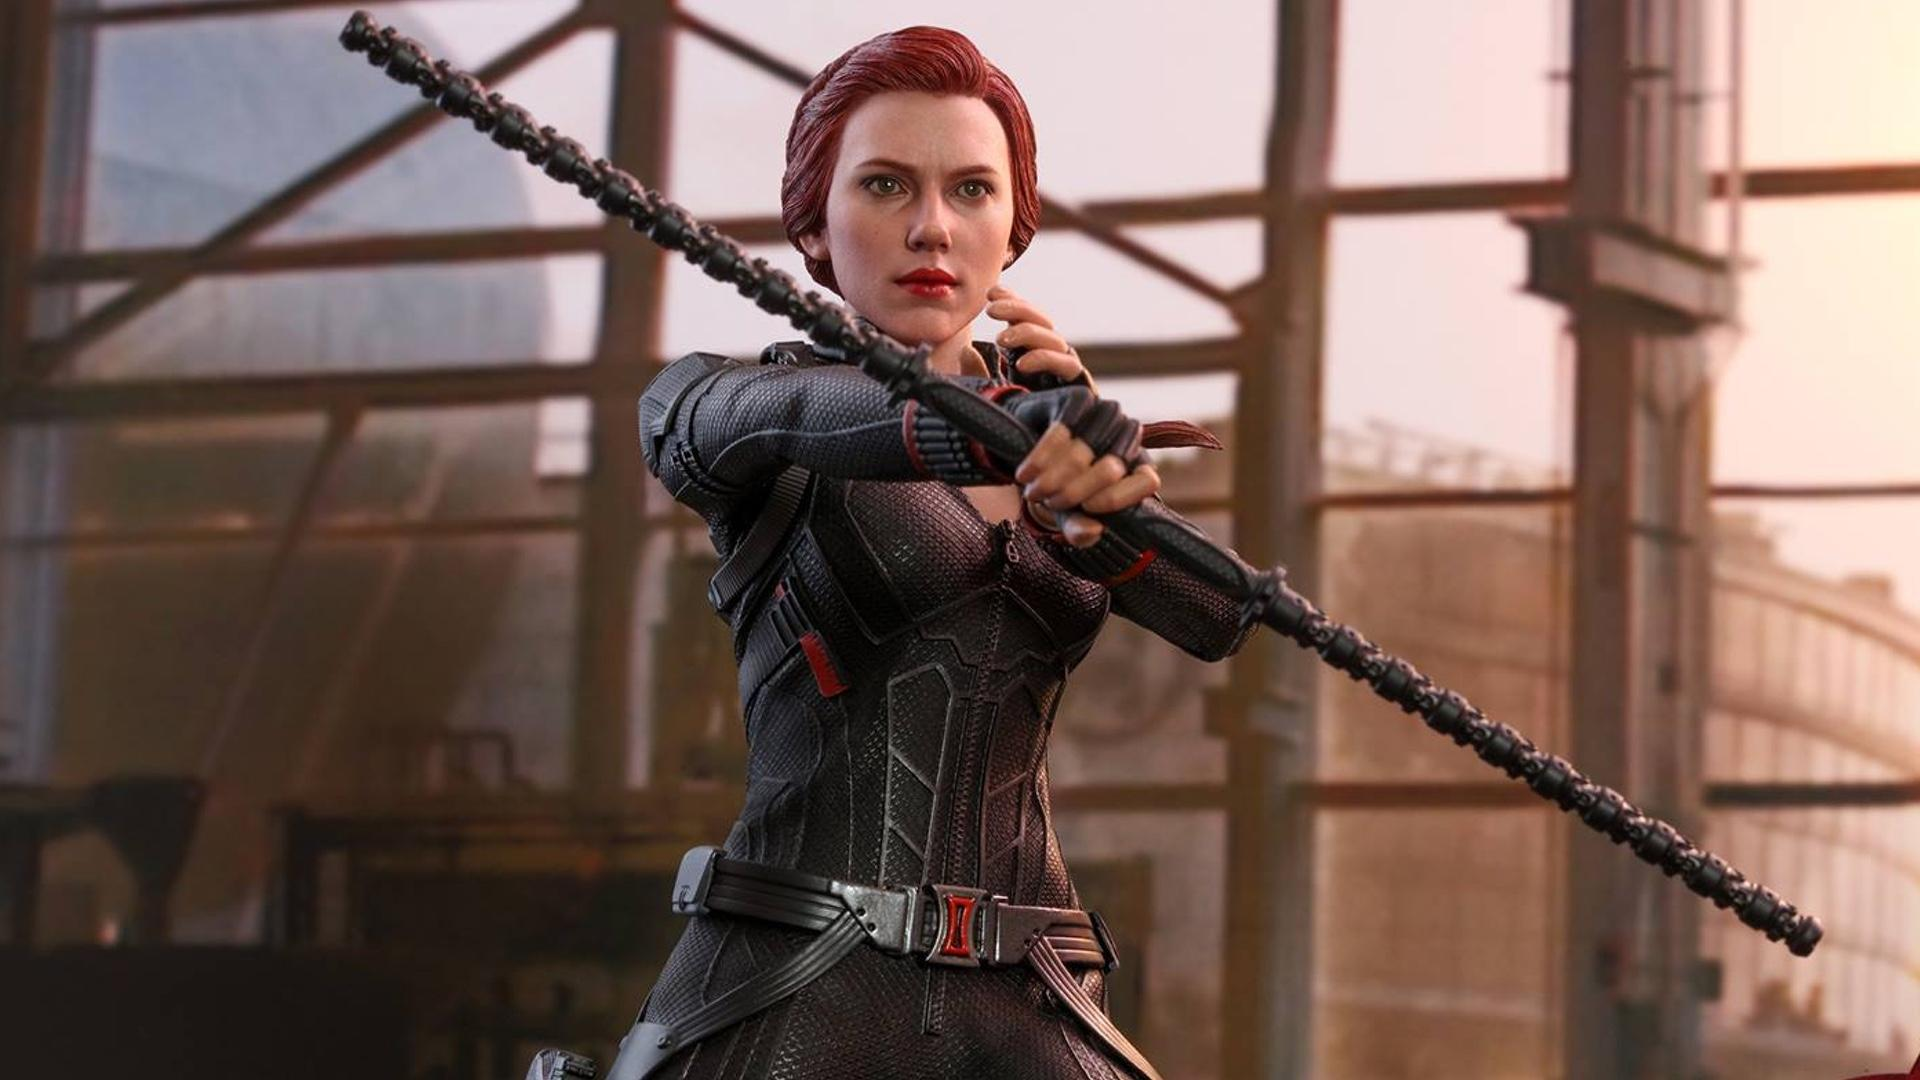 600 Wallpaper Black Widow Endgame HD Paling Baru